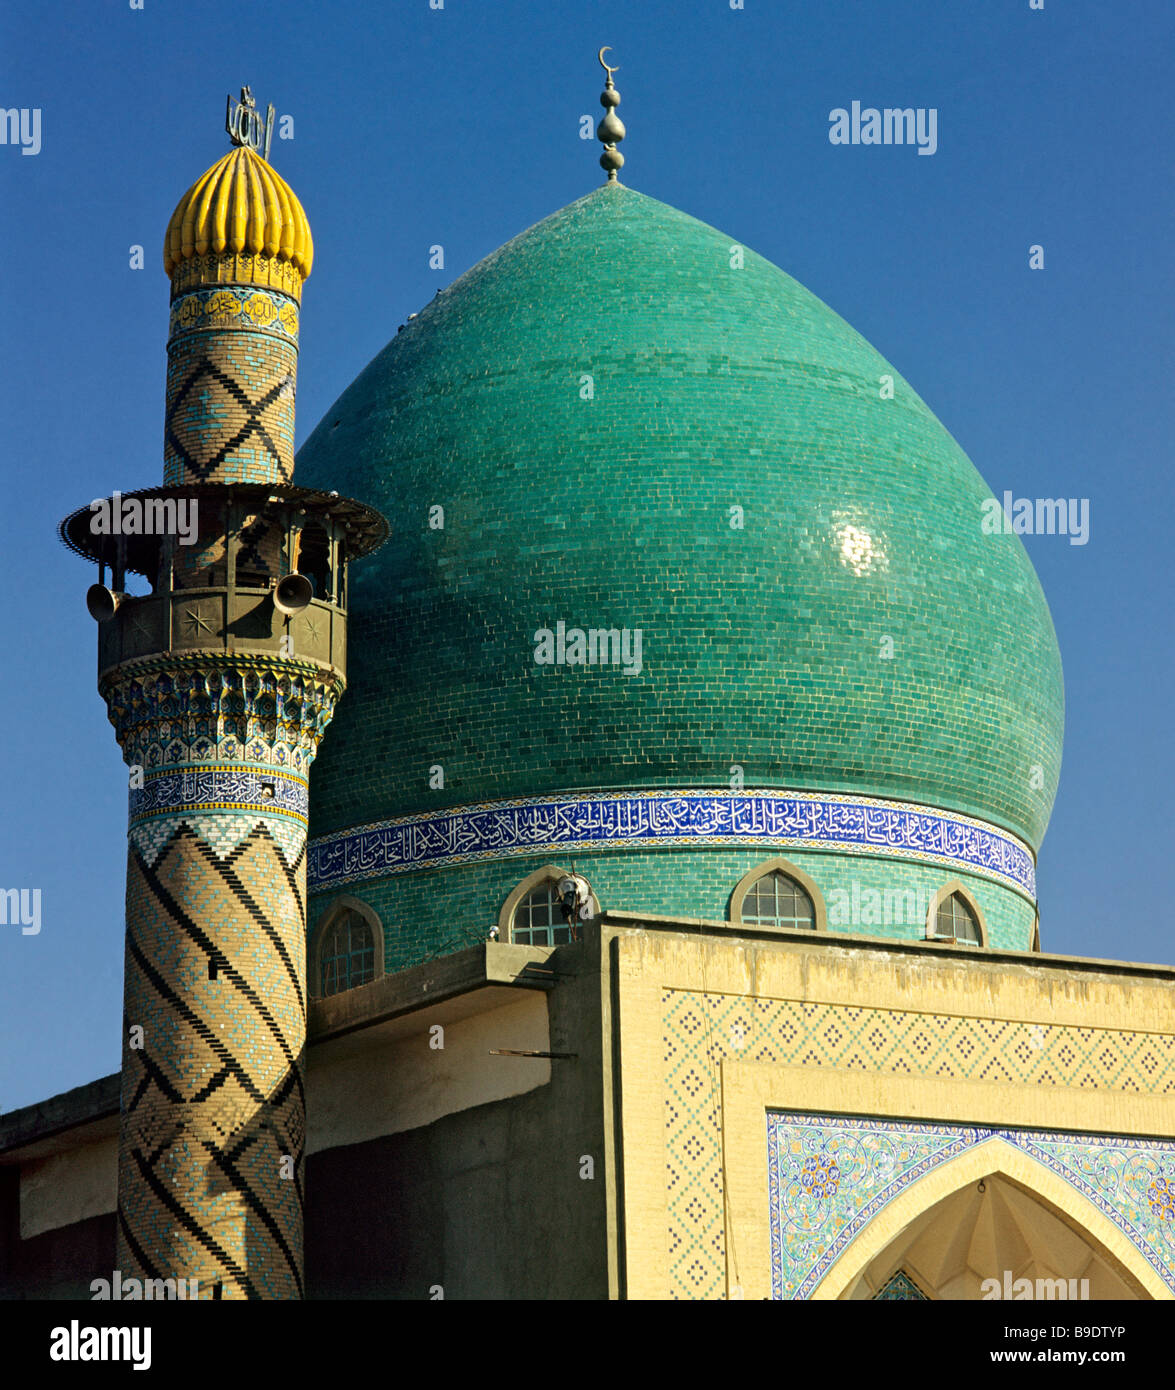 Green-domed mosque, minaret tower, Baghdad, Iraq, Middle East - Stock Image